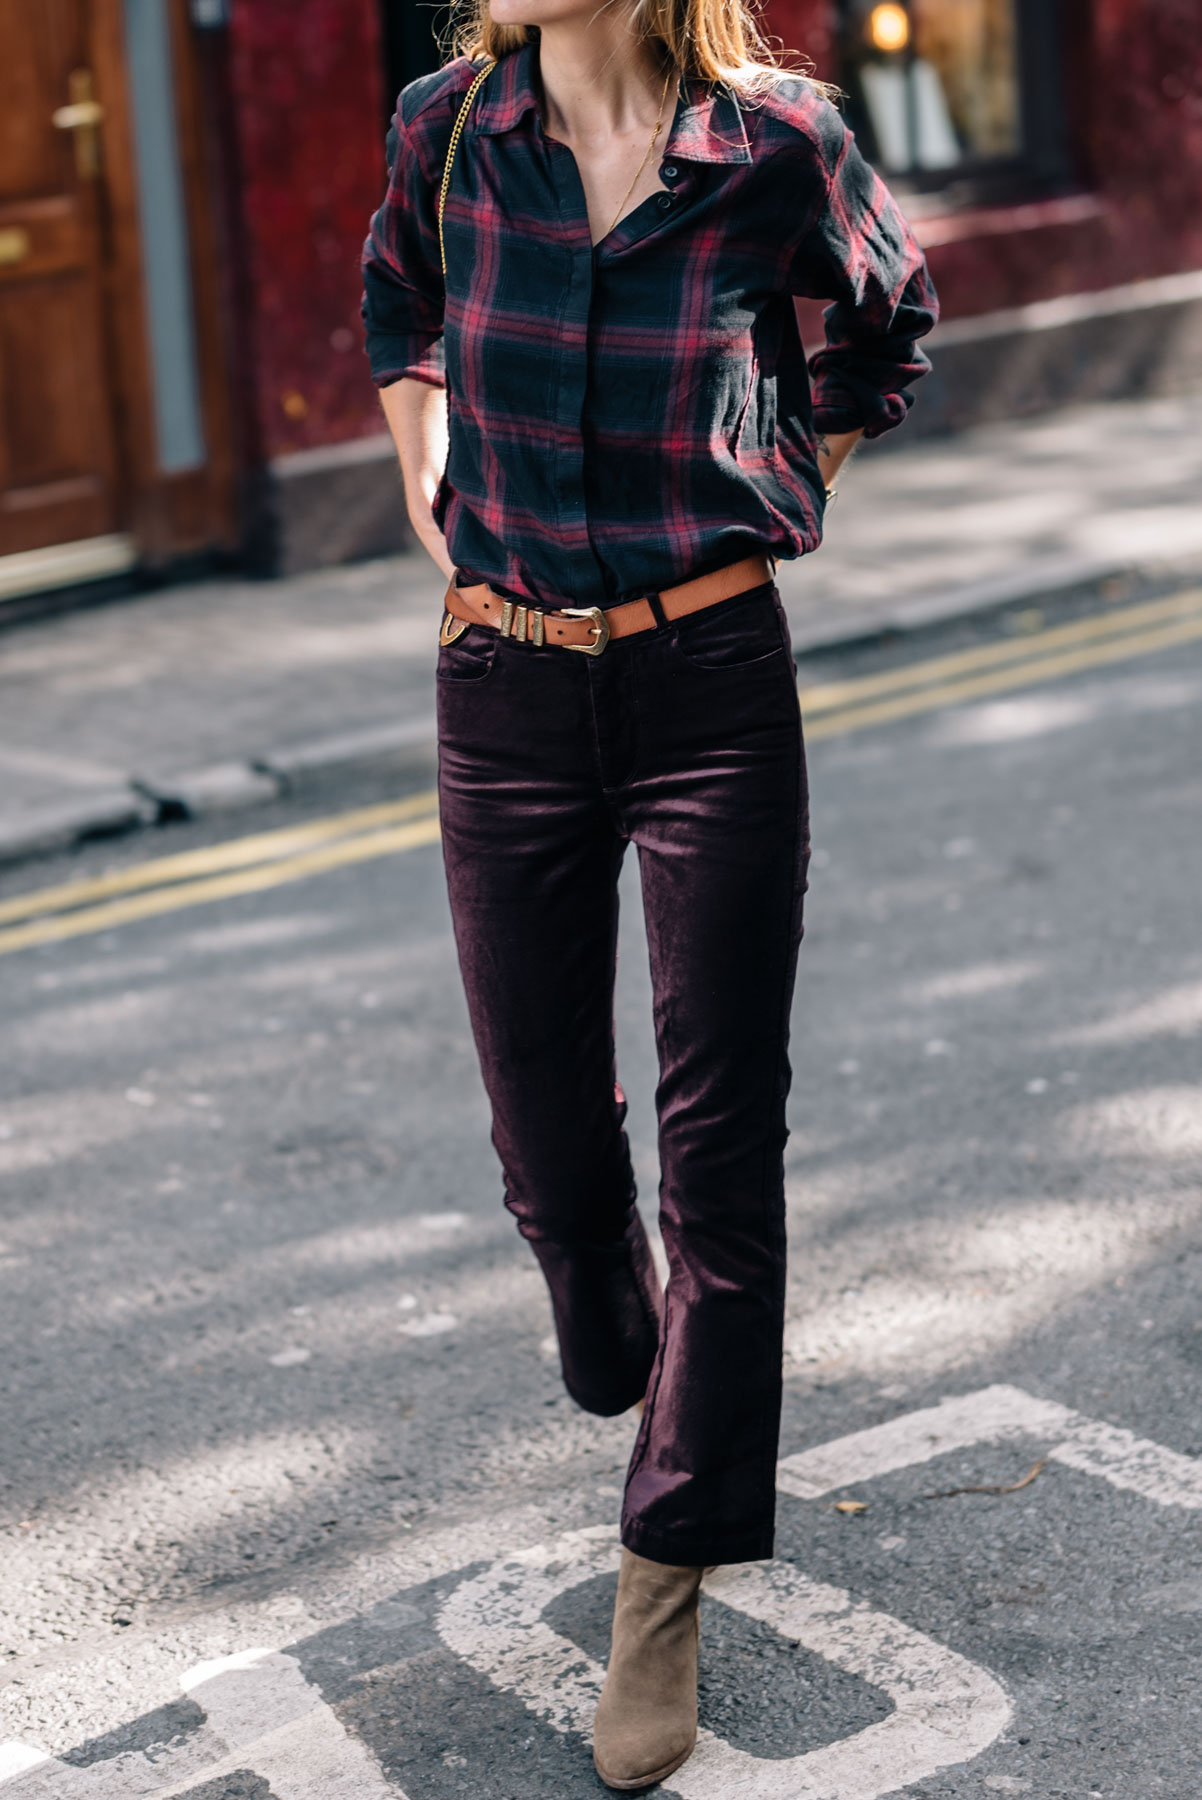 Jess Ann Kirby wears Paige Denim Velvet Pants with a Plaid Shirt and Leather Belt